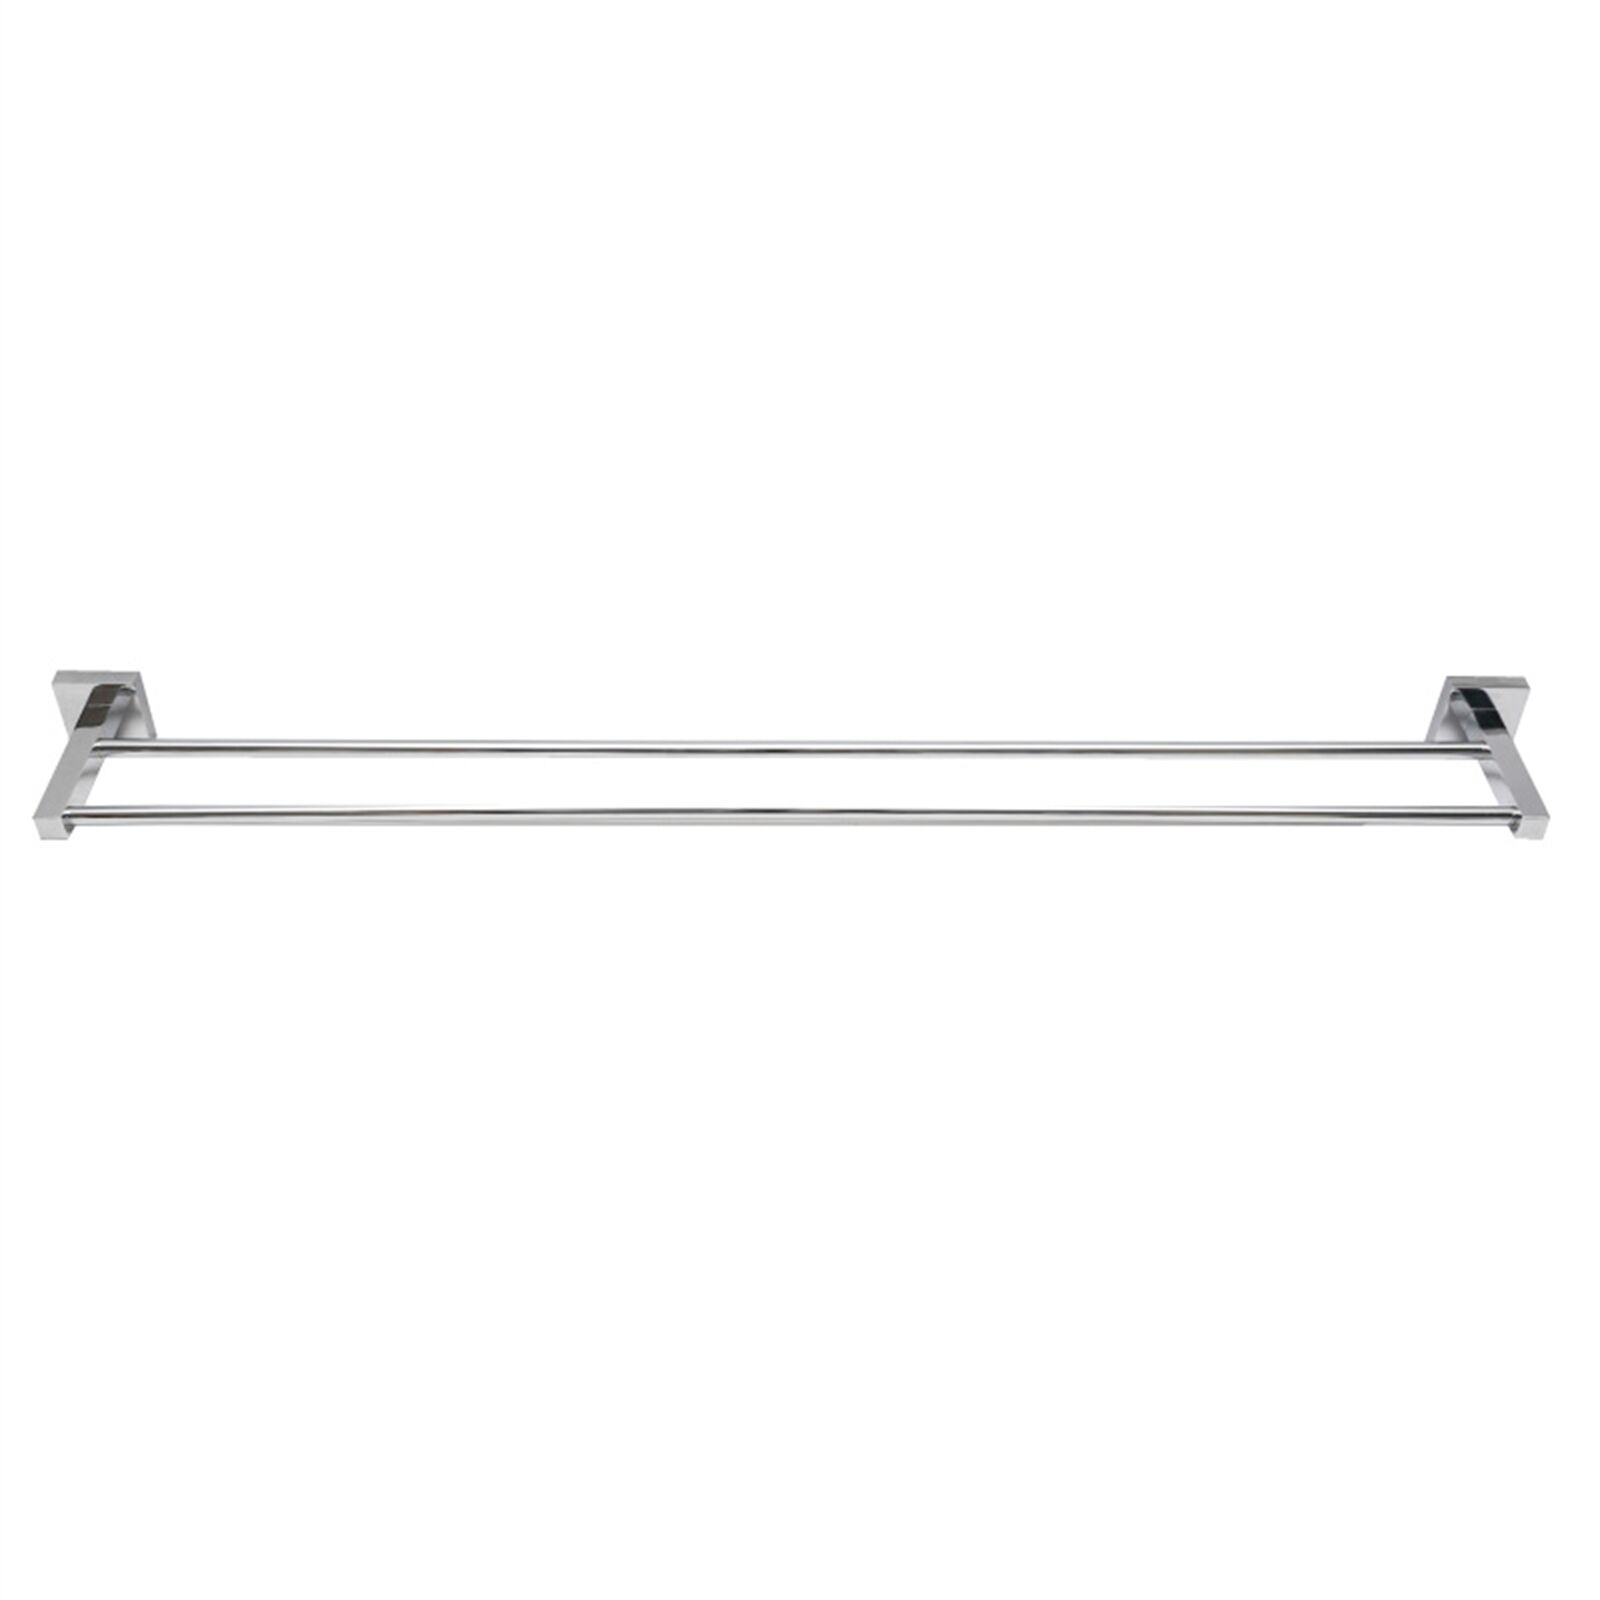 Enzo Barelli LILLE DOUBLE TOWEL RAIL Can Be Cut To Size, CHROME - 600mm Or 760mm